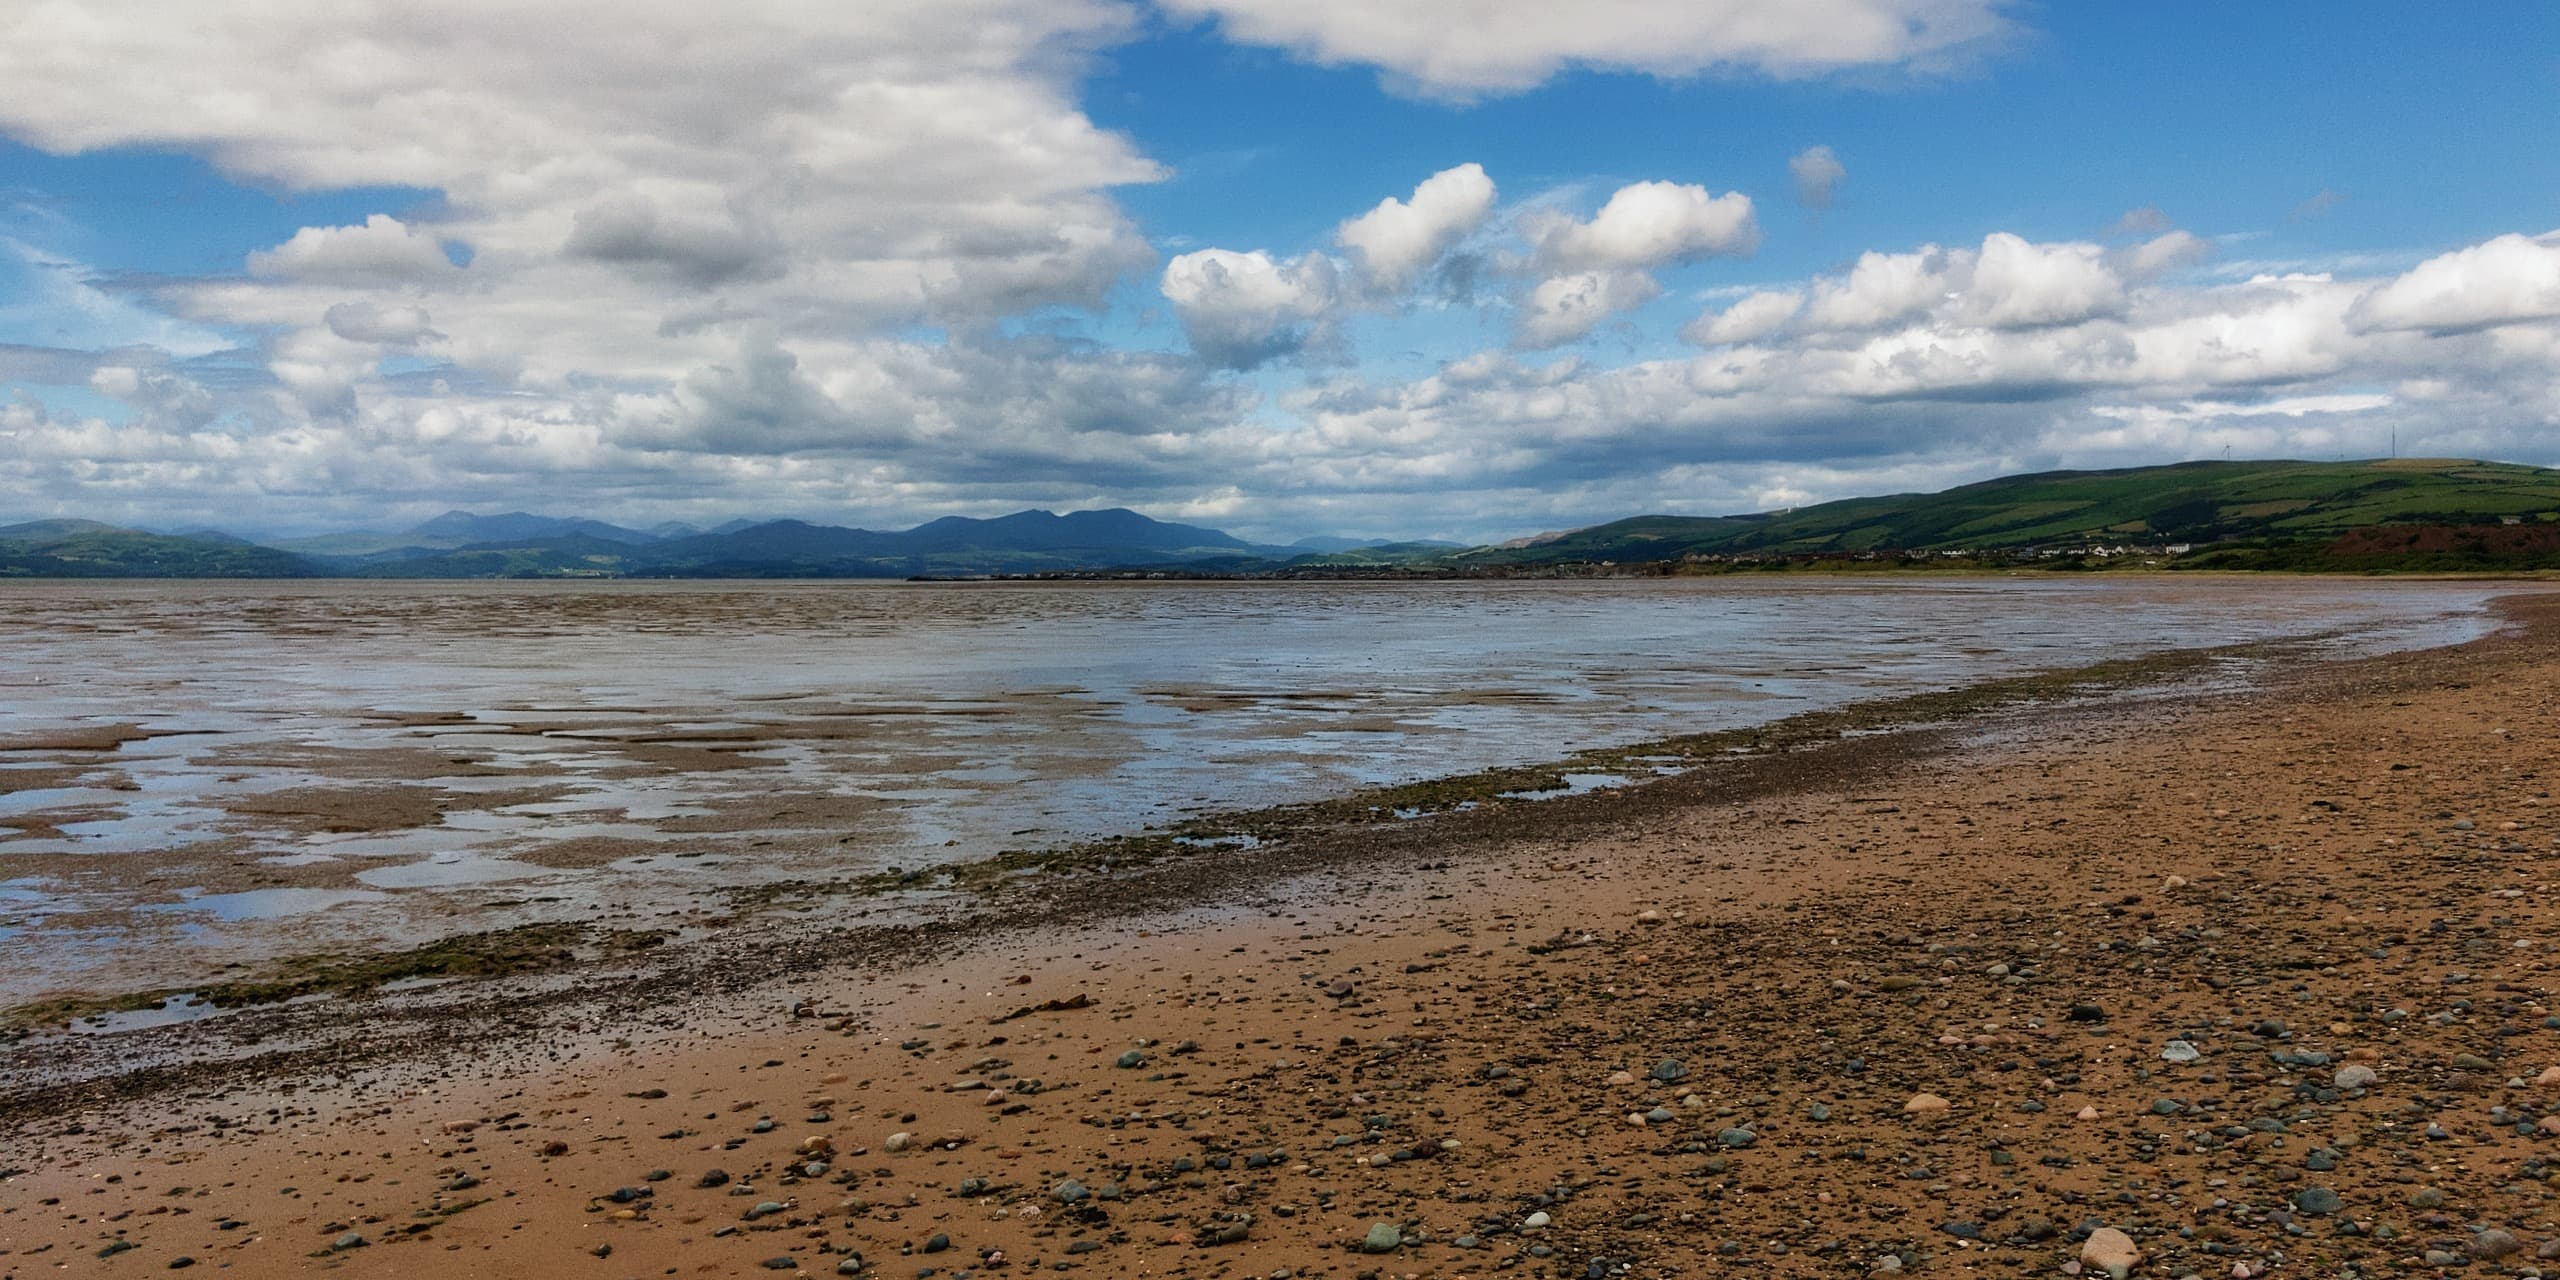 The Cumbrian Coast: Our Top 5 Walks